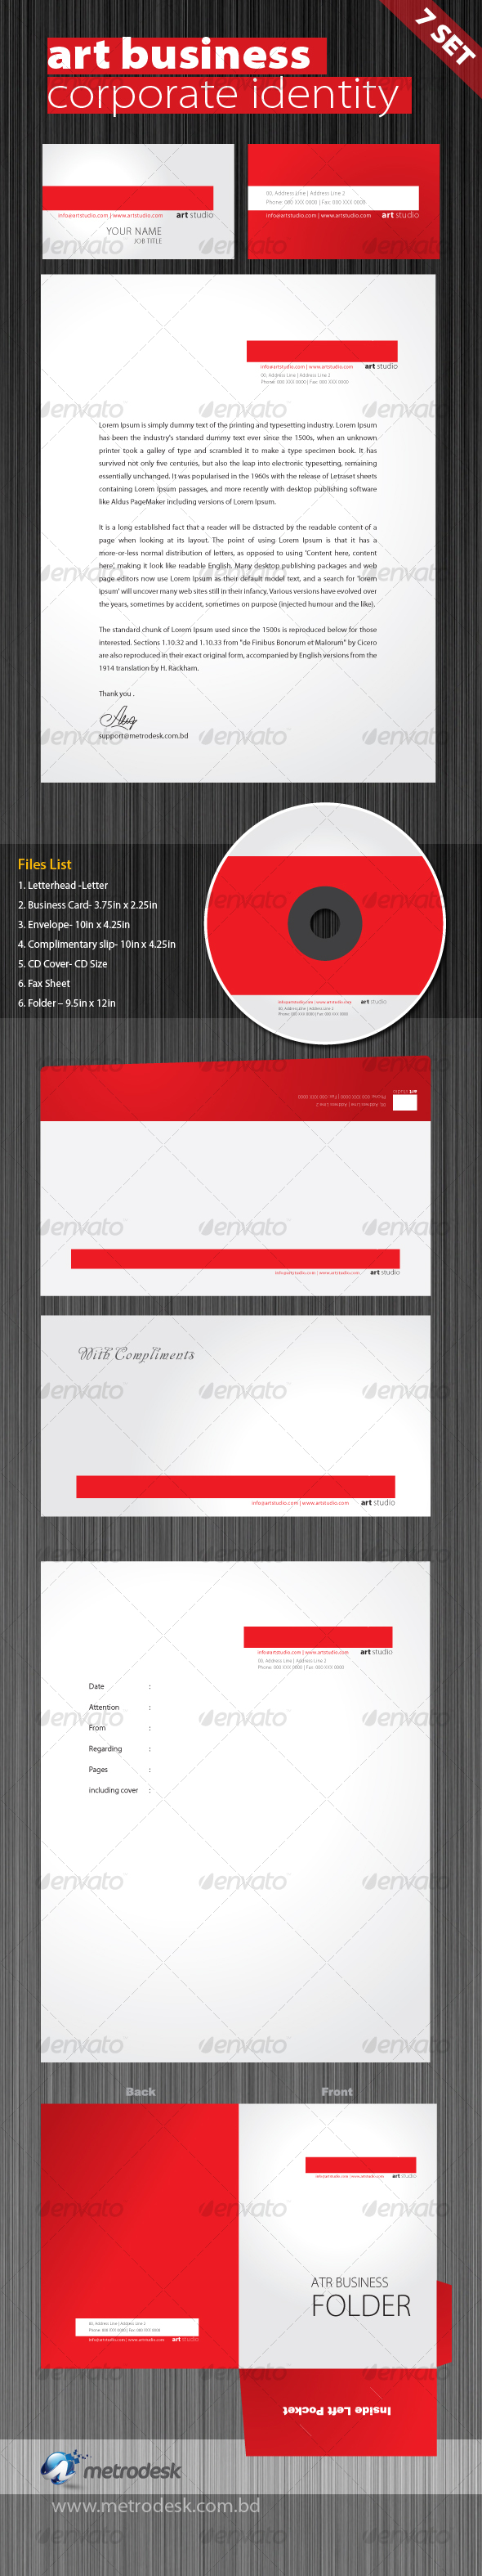 Art Studio Corporate Identity 7 pack - Stationery Print Templates